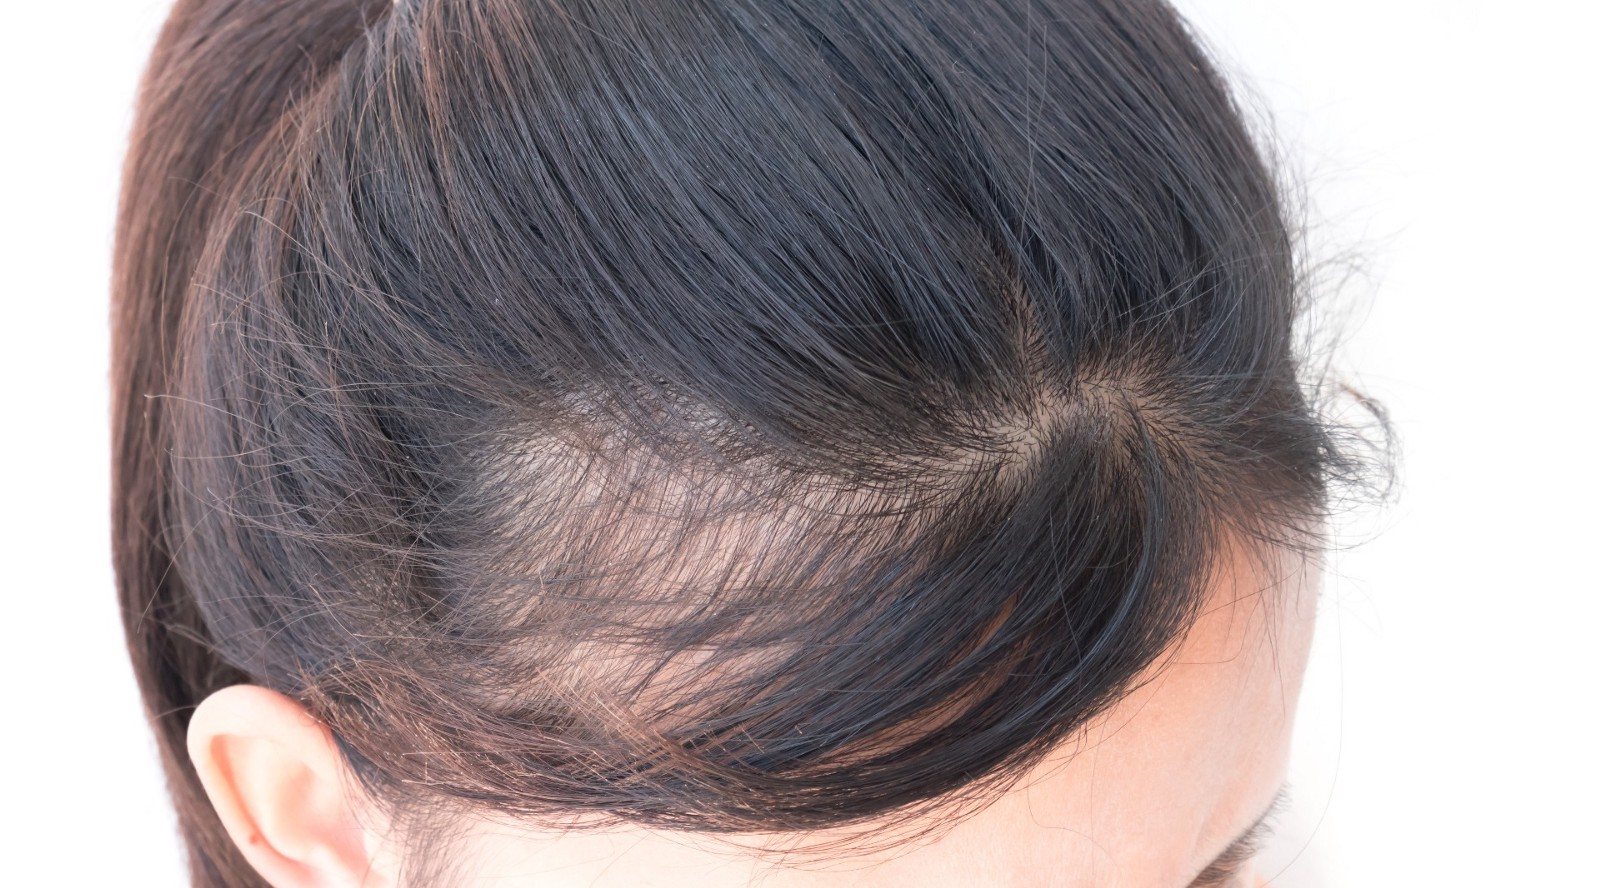 : key prompters, blood tests, all inclusive approach, alopecia in women, androgenic alopecia in women